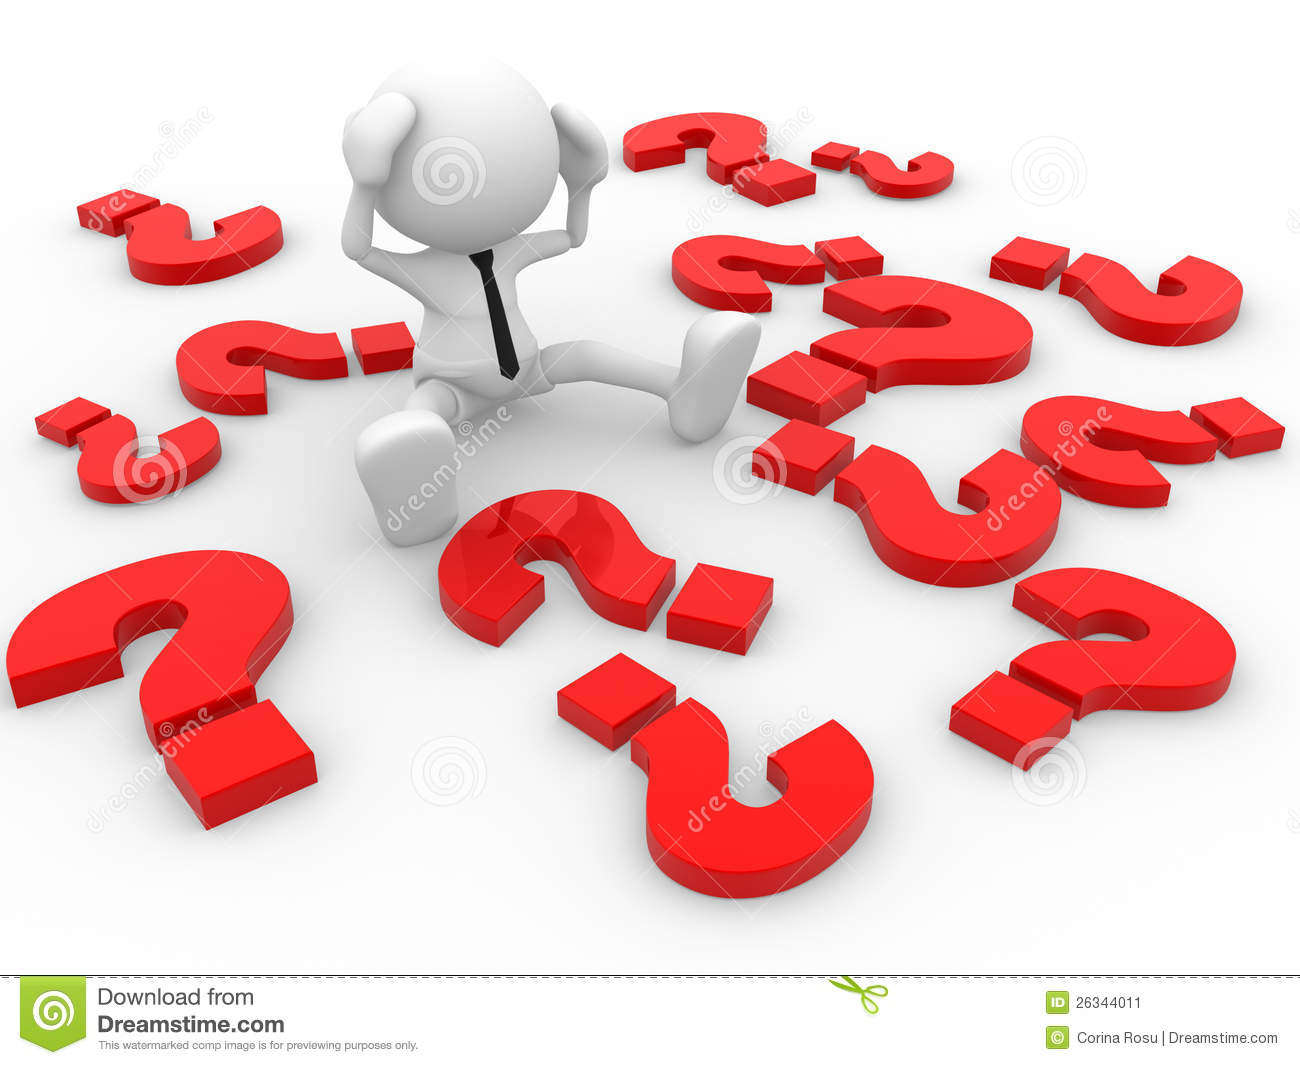 question stock image question marks stock image image 26344011 3130